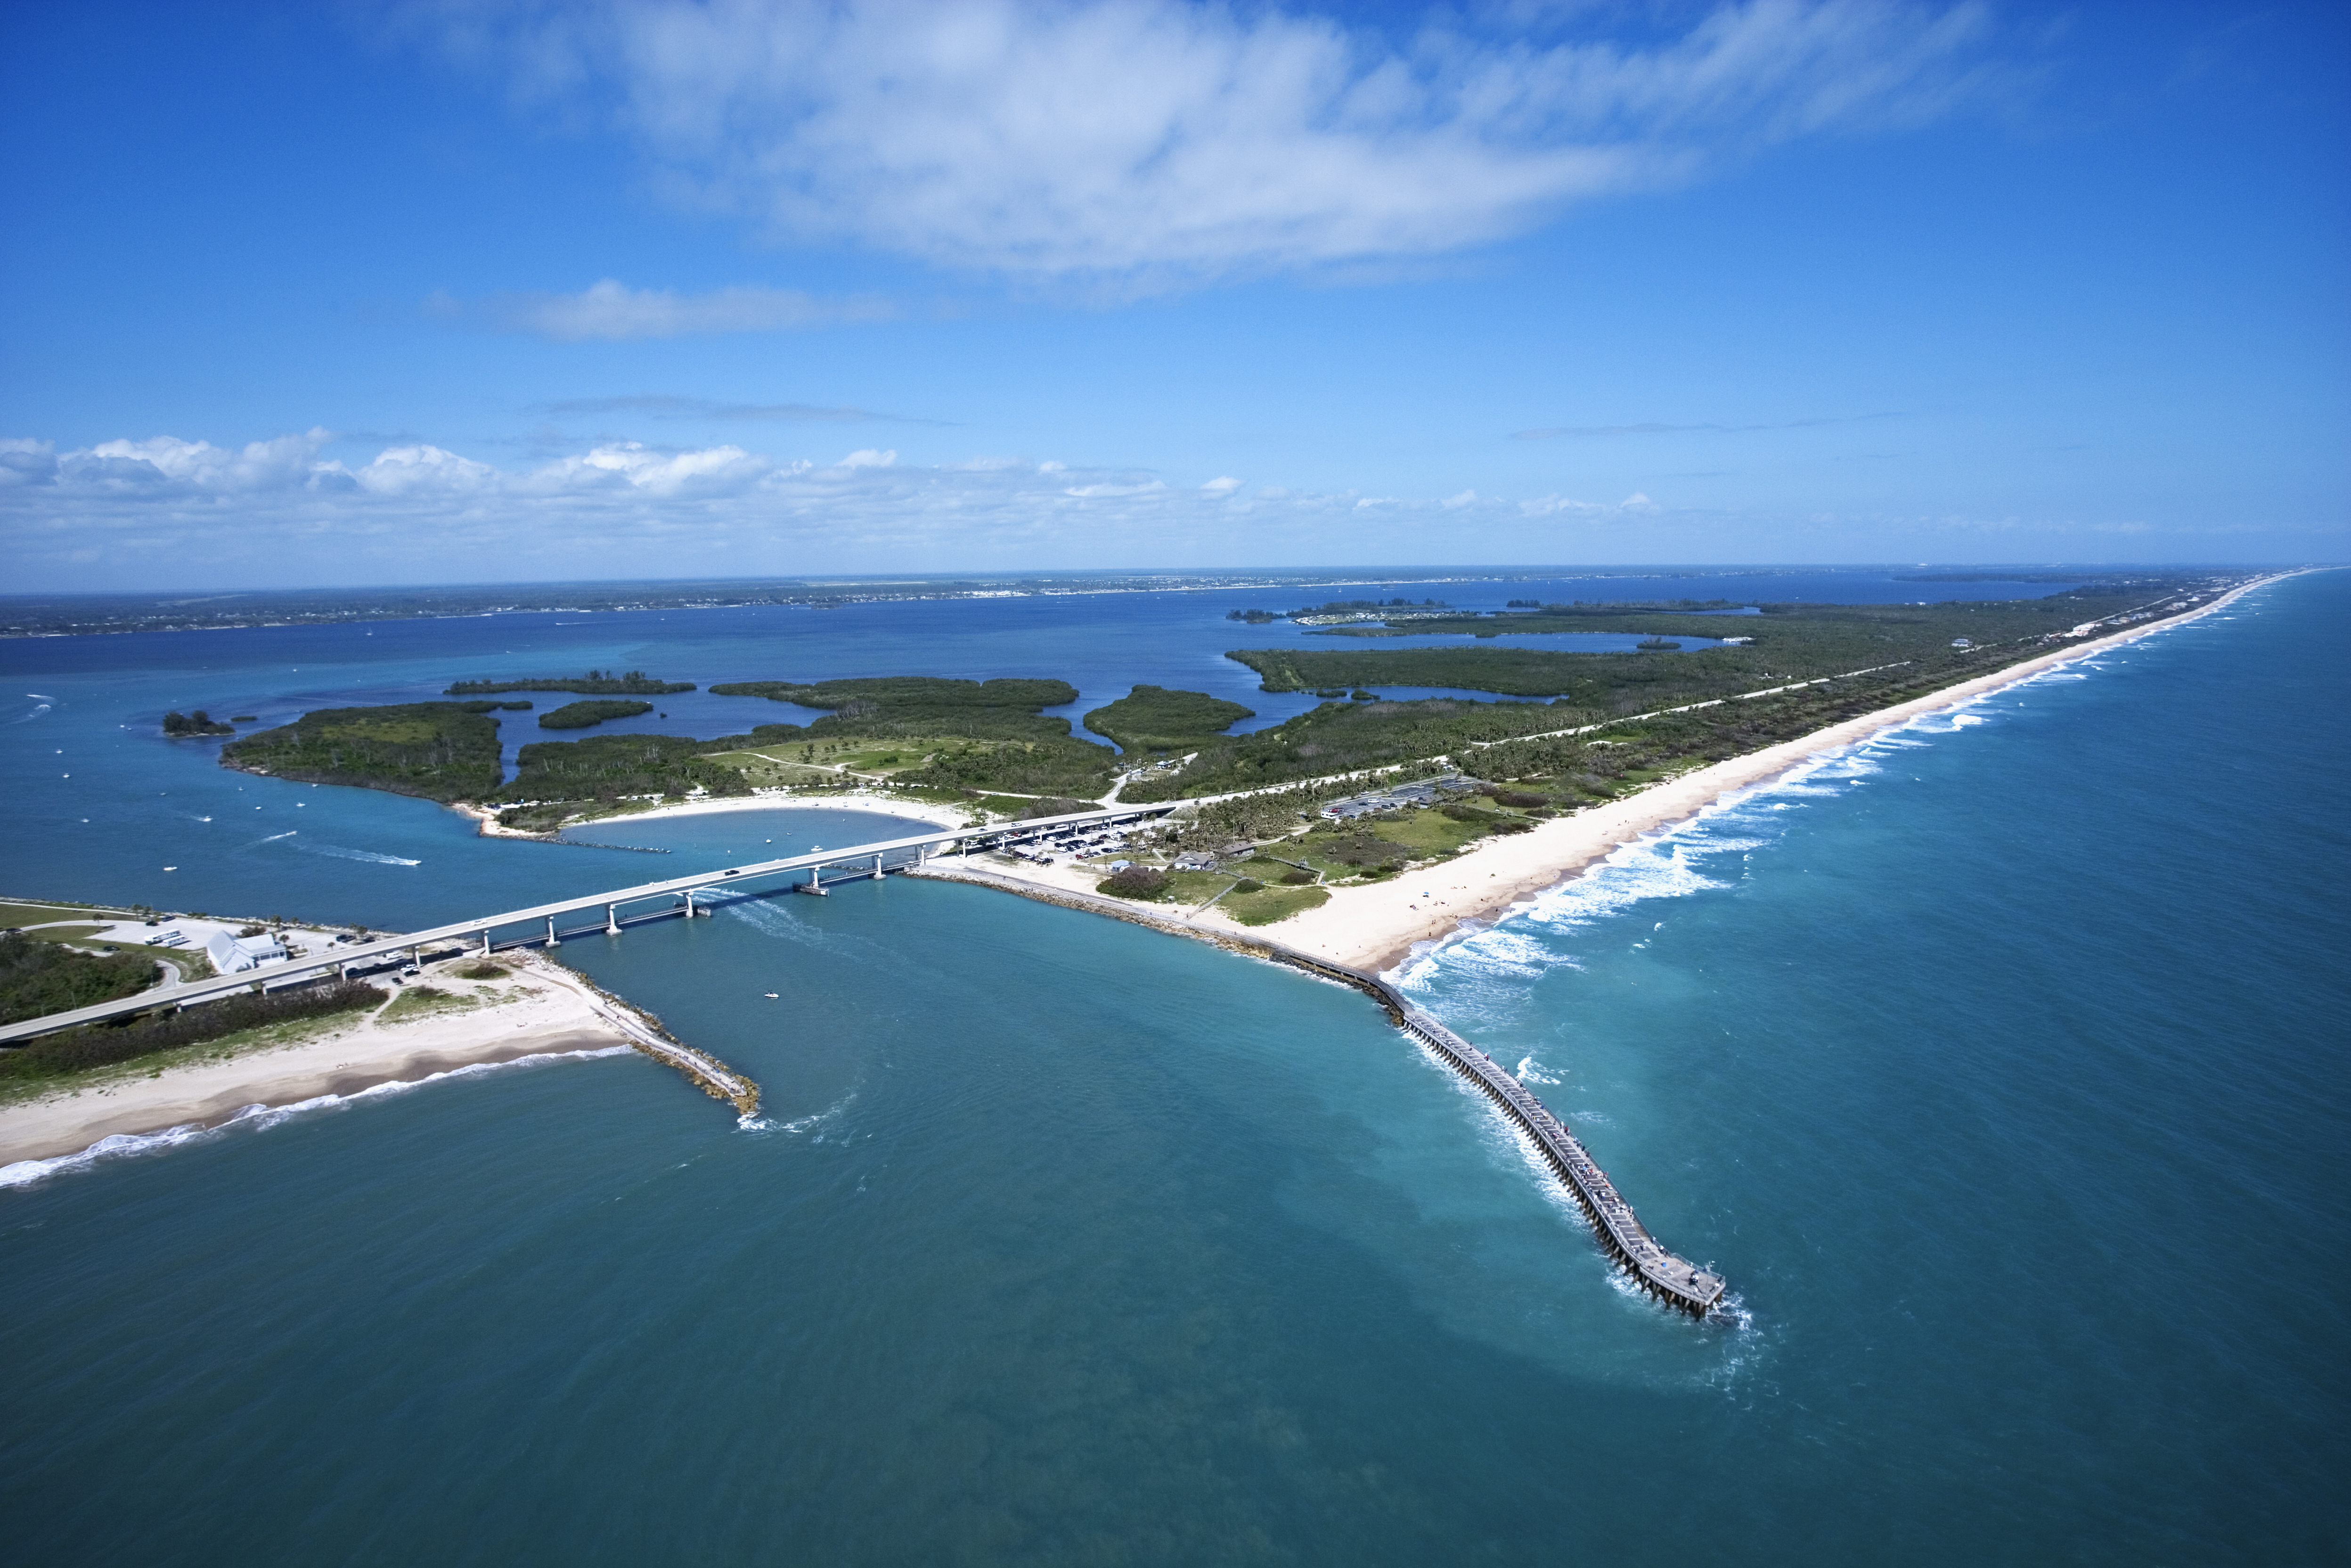 Aerial view of Indian River Lagoon Scenic Highway on Melbourne Beach Florida with inlet and pier.